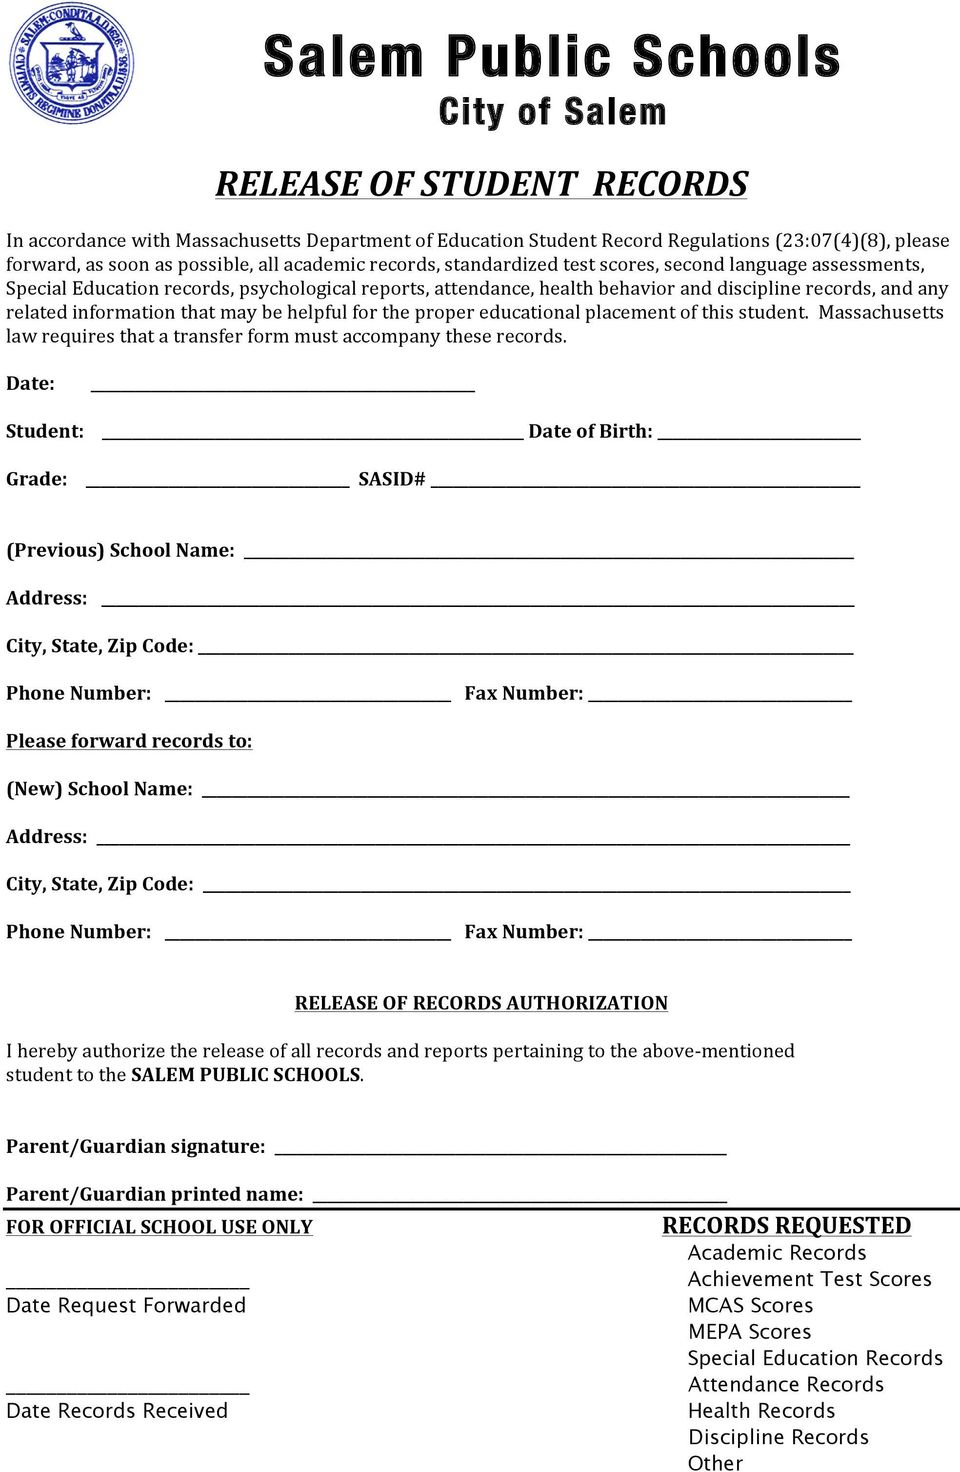 information that may be helpful for the proper educational placement of this student. Massachusetts law requires that a transfer form must accompany these records.